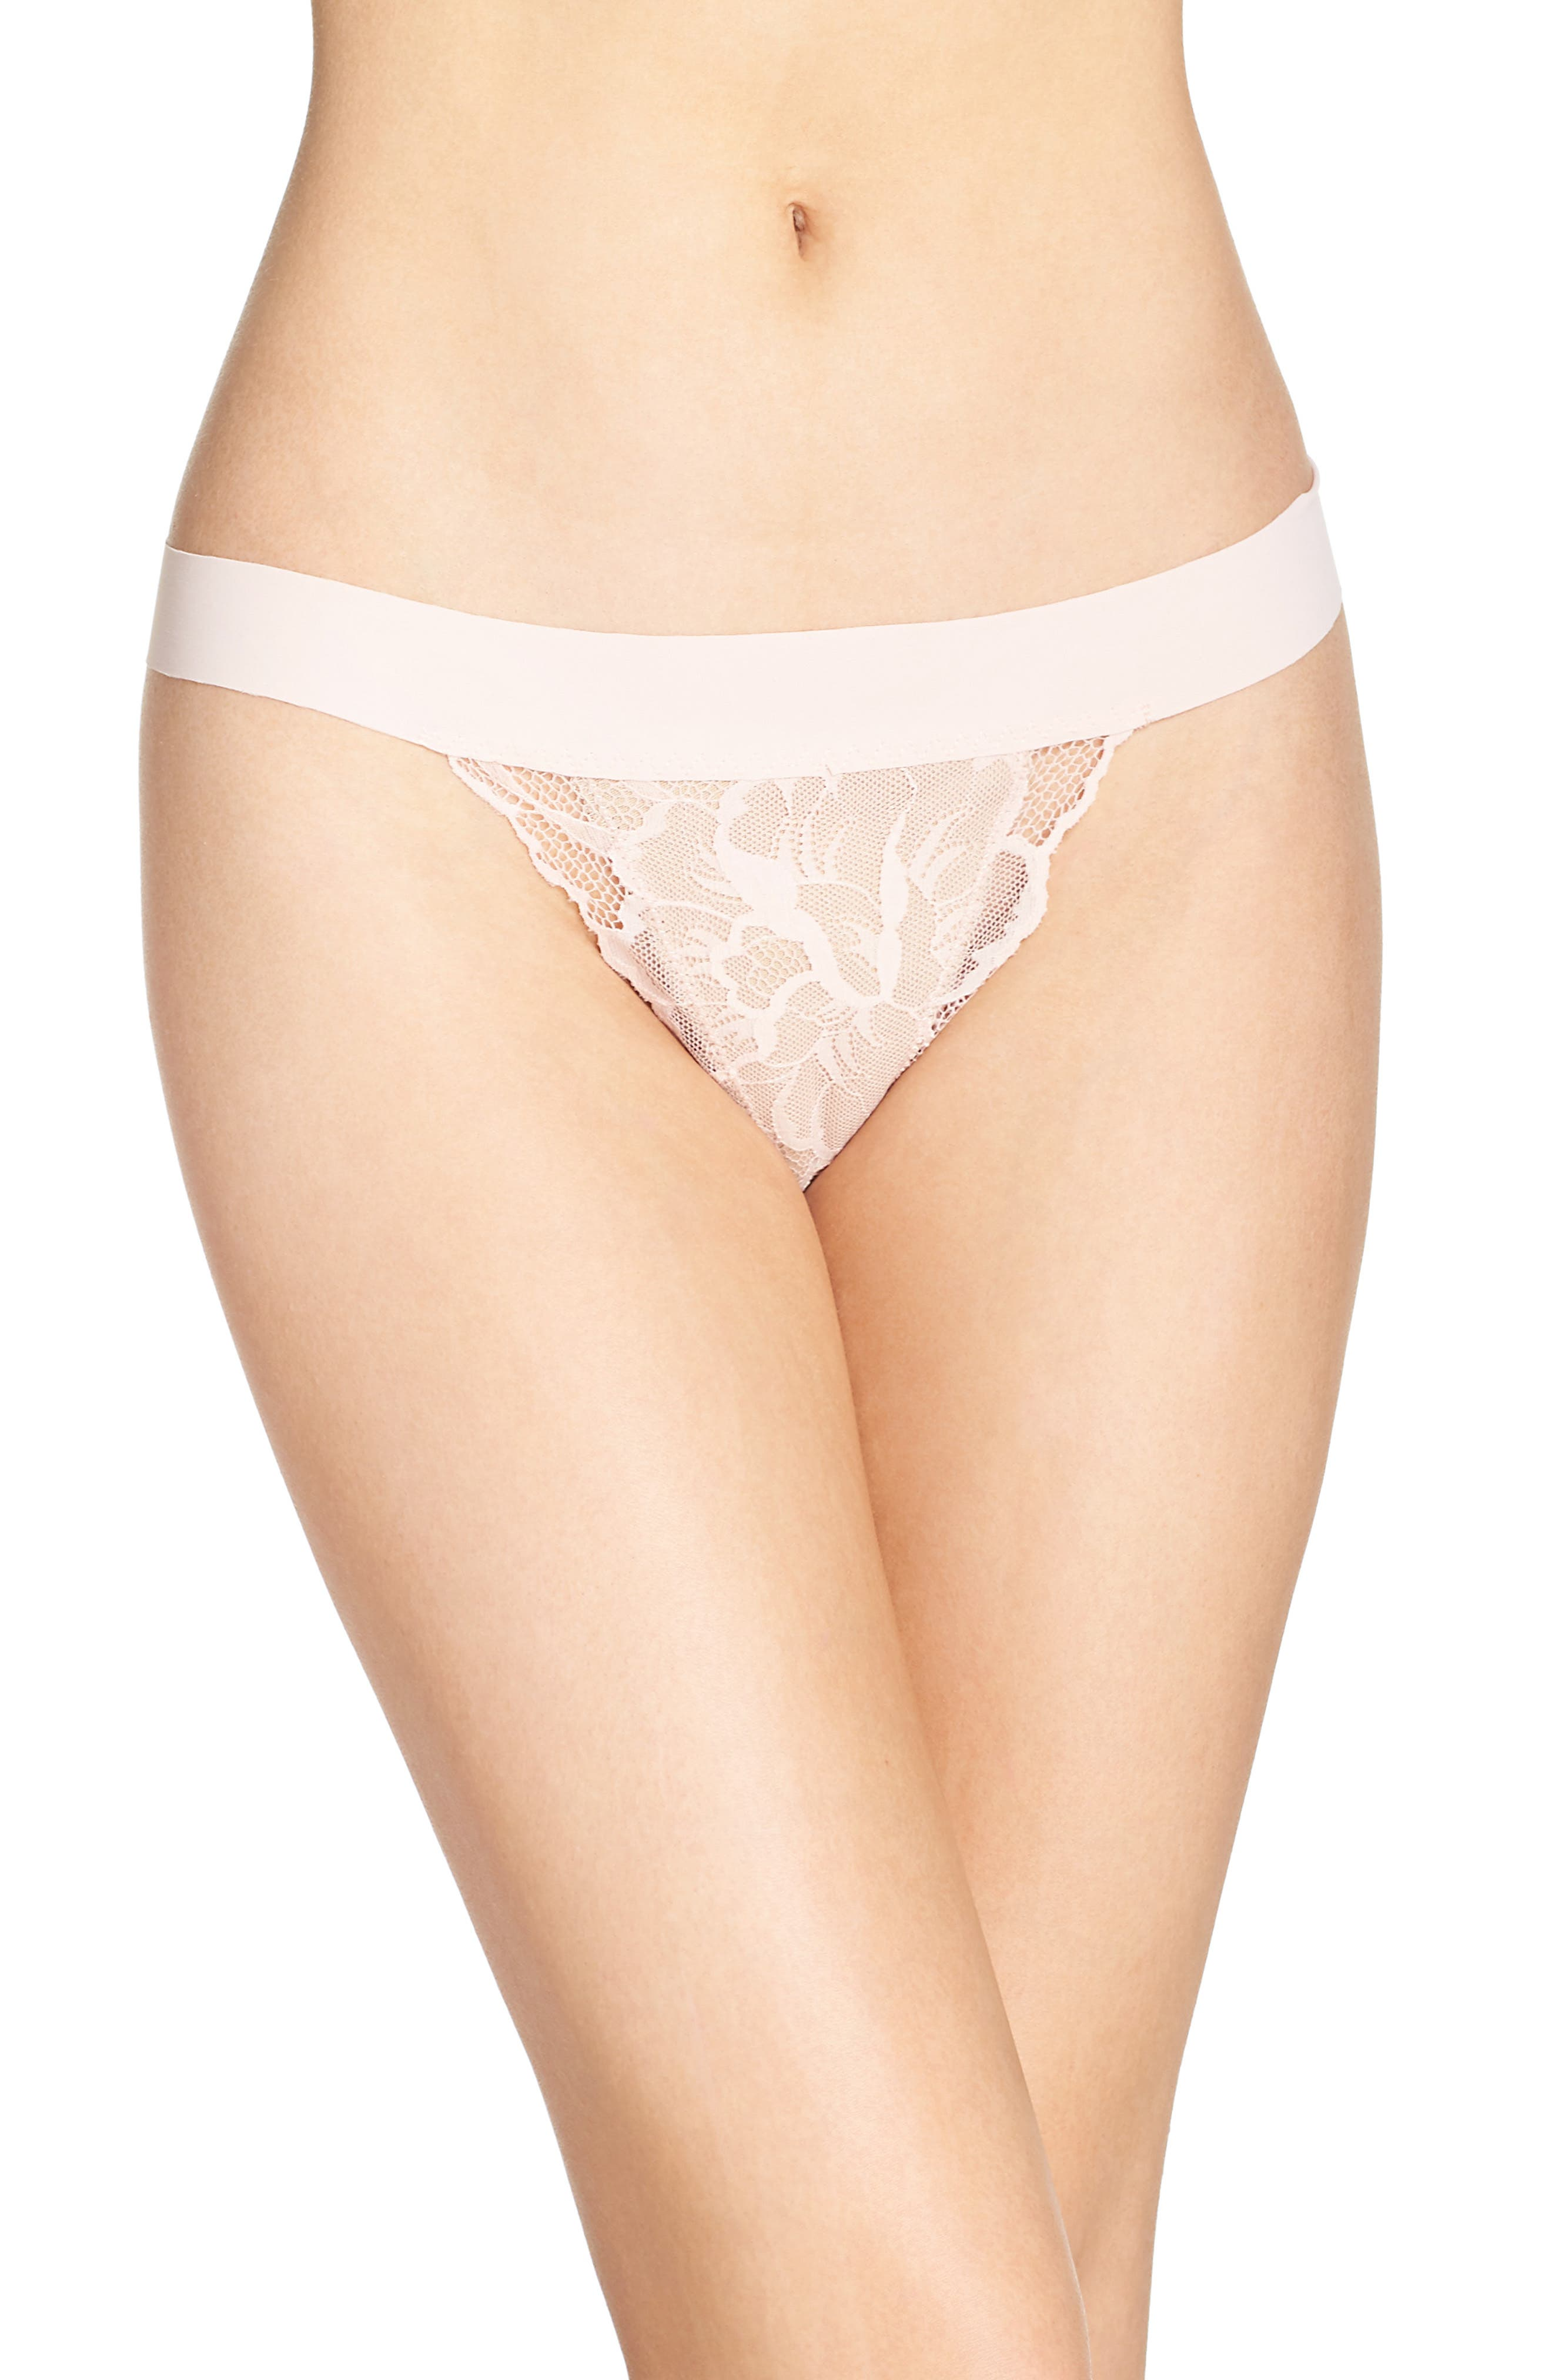 'Double Take' Lace G-String Thong,                         Main,                         color, Blush